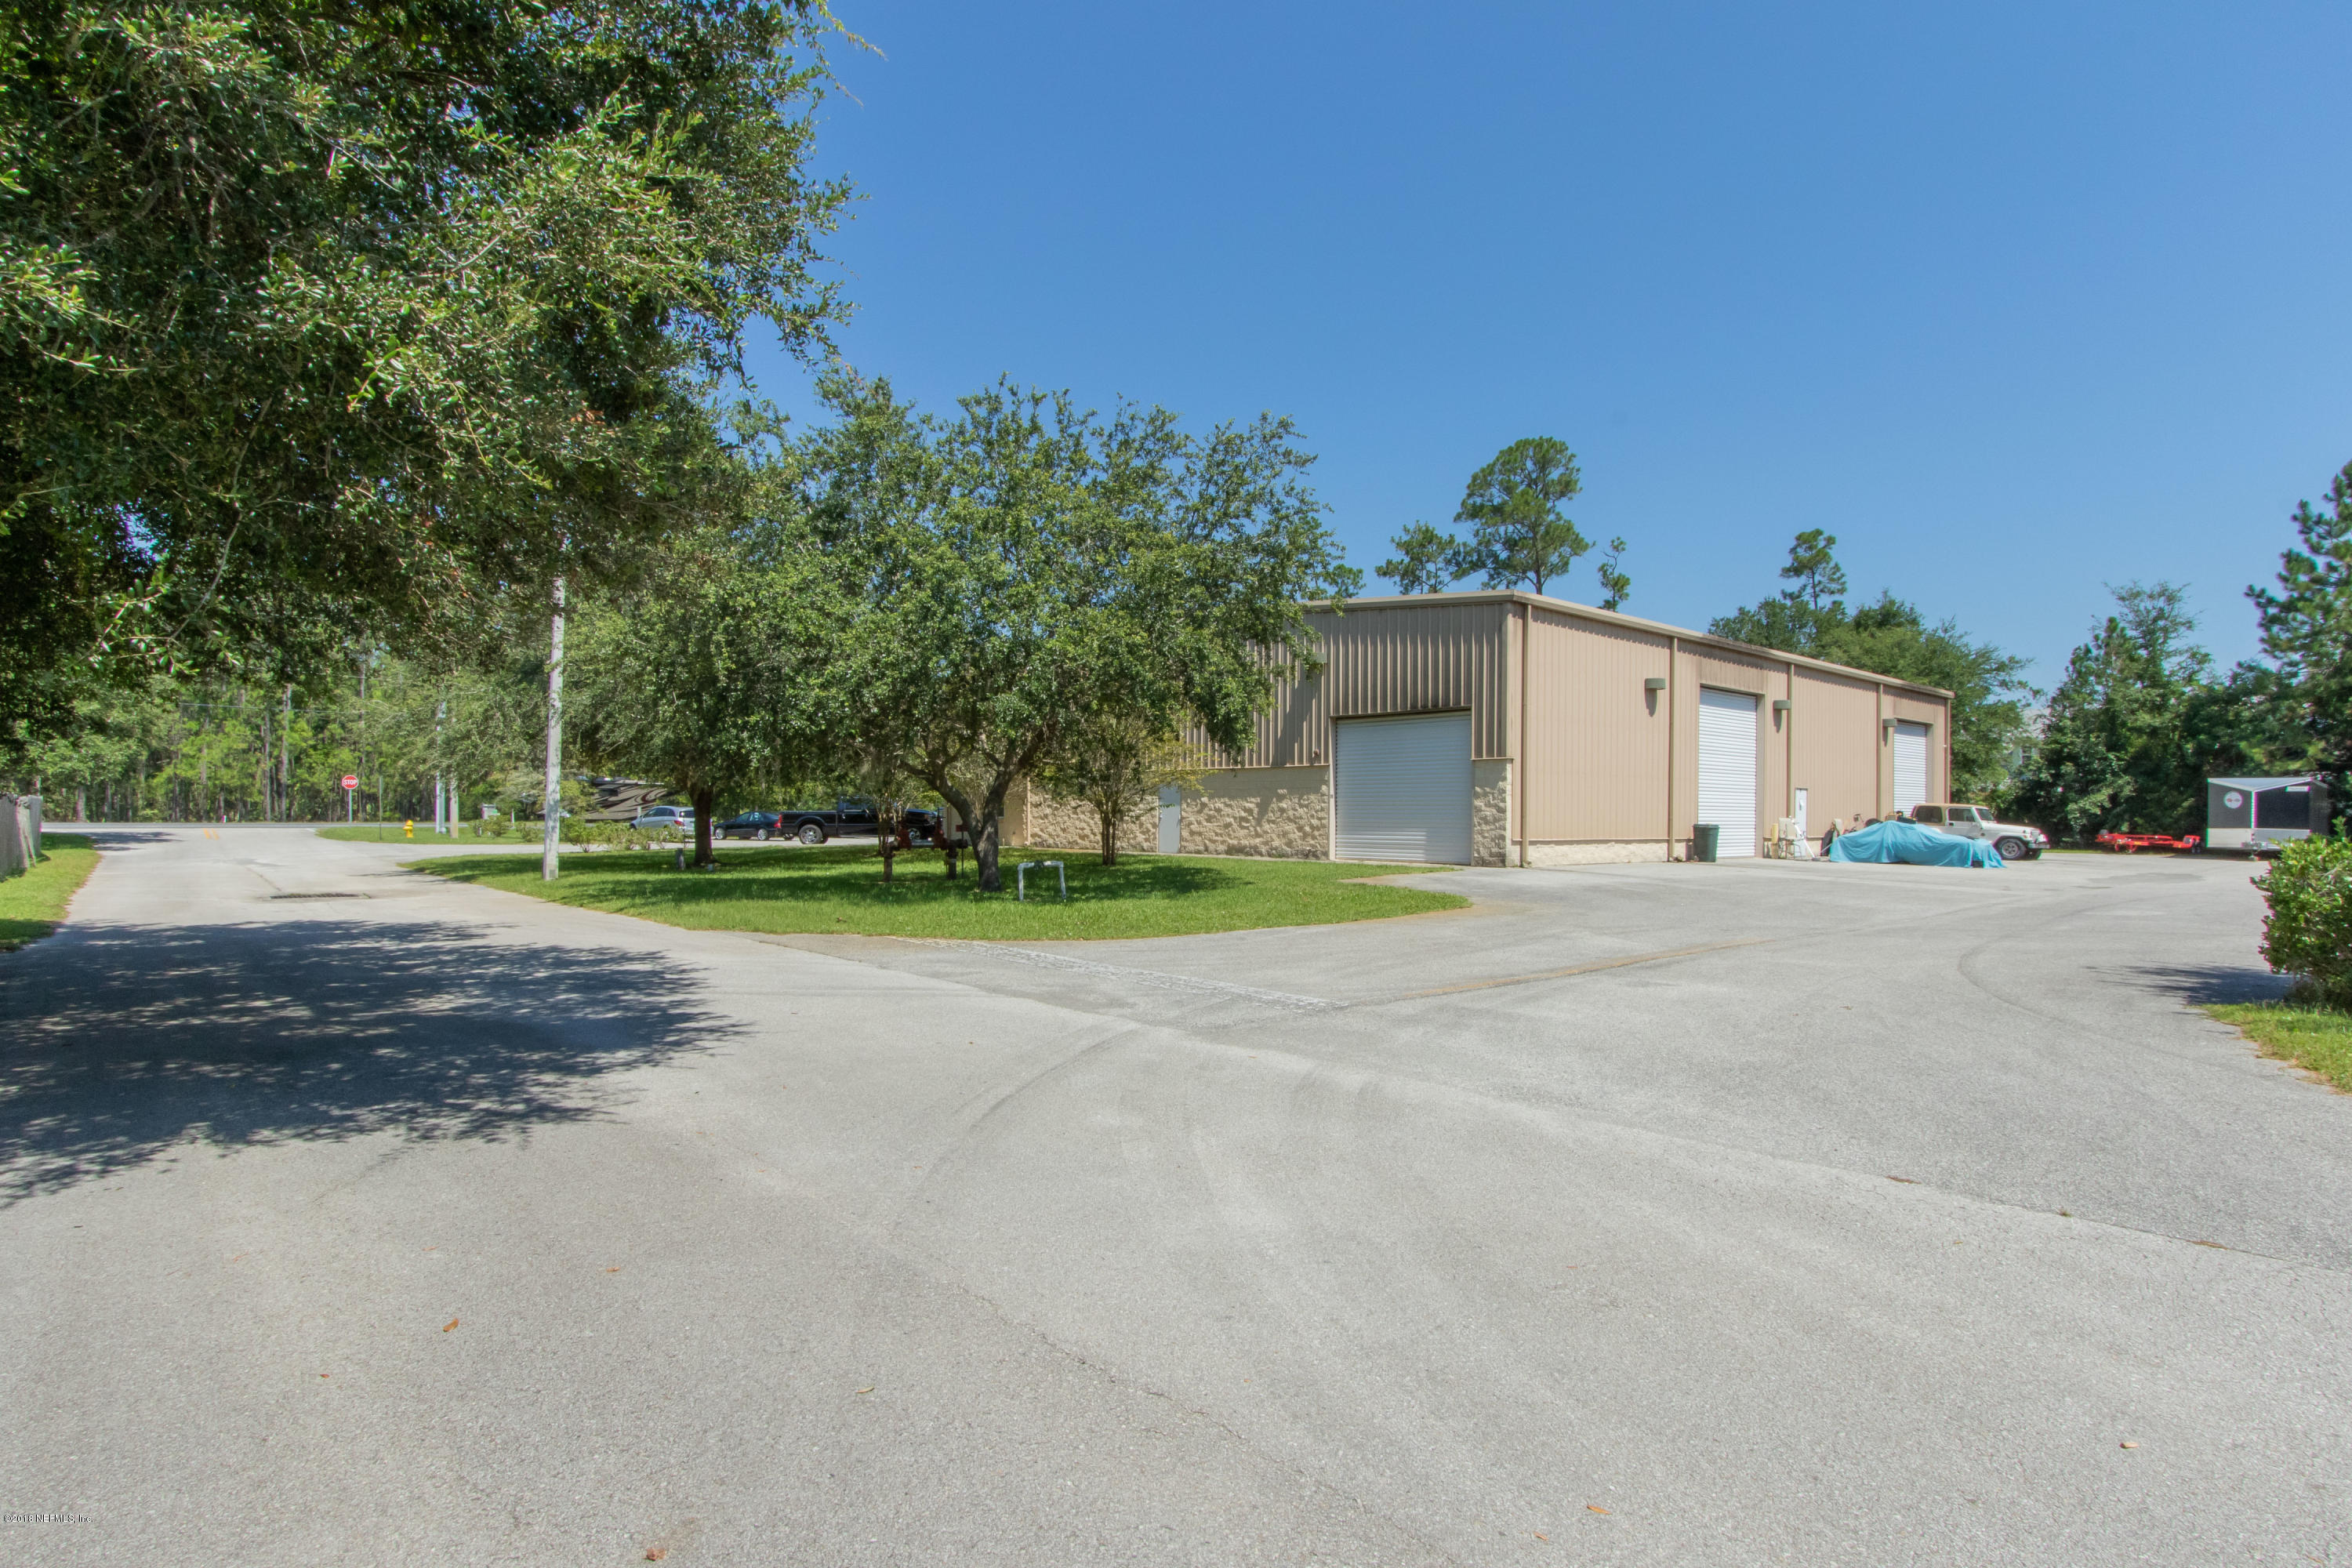 5830 US-1 SOUTH, ST AUGUSTINE, FLORIDA 32086, ,Commercial,For sale,US-1 SOUTH,1028092